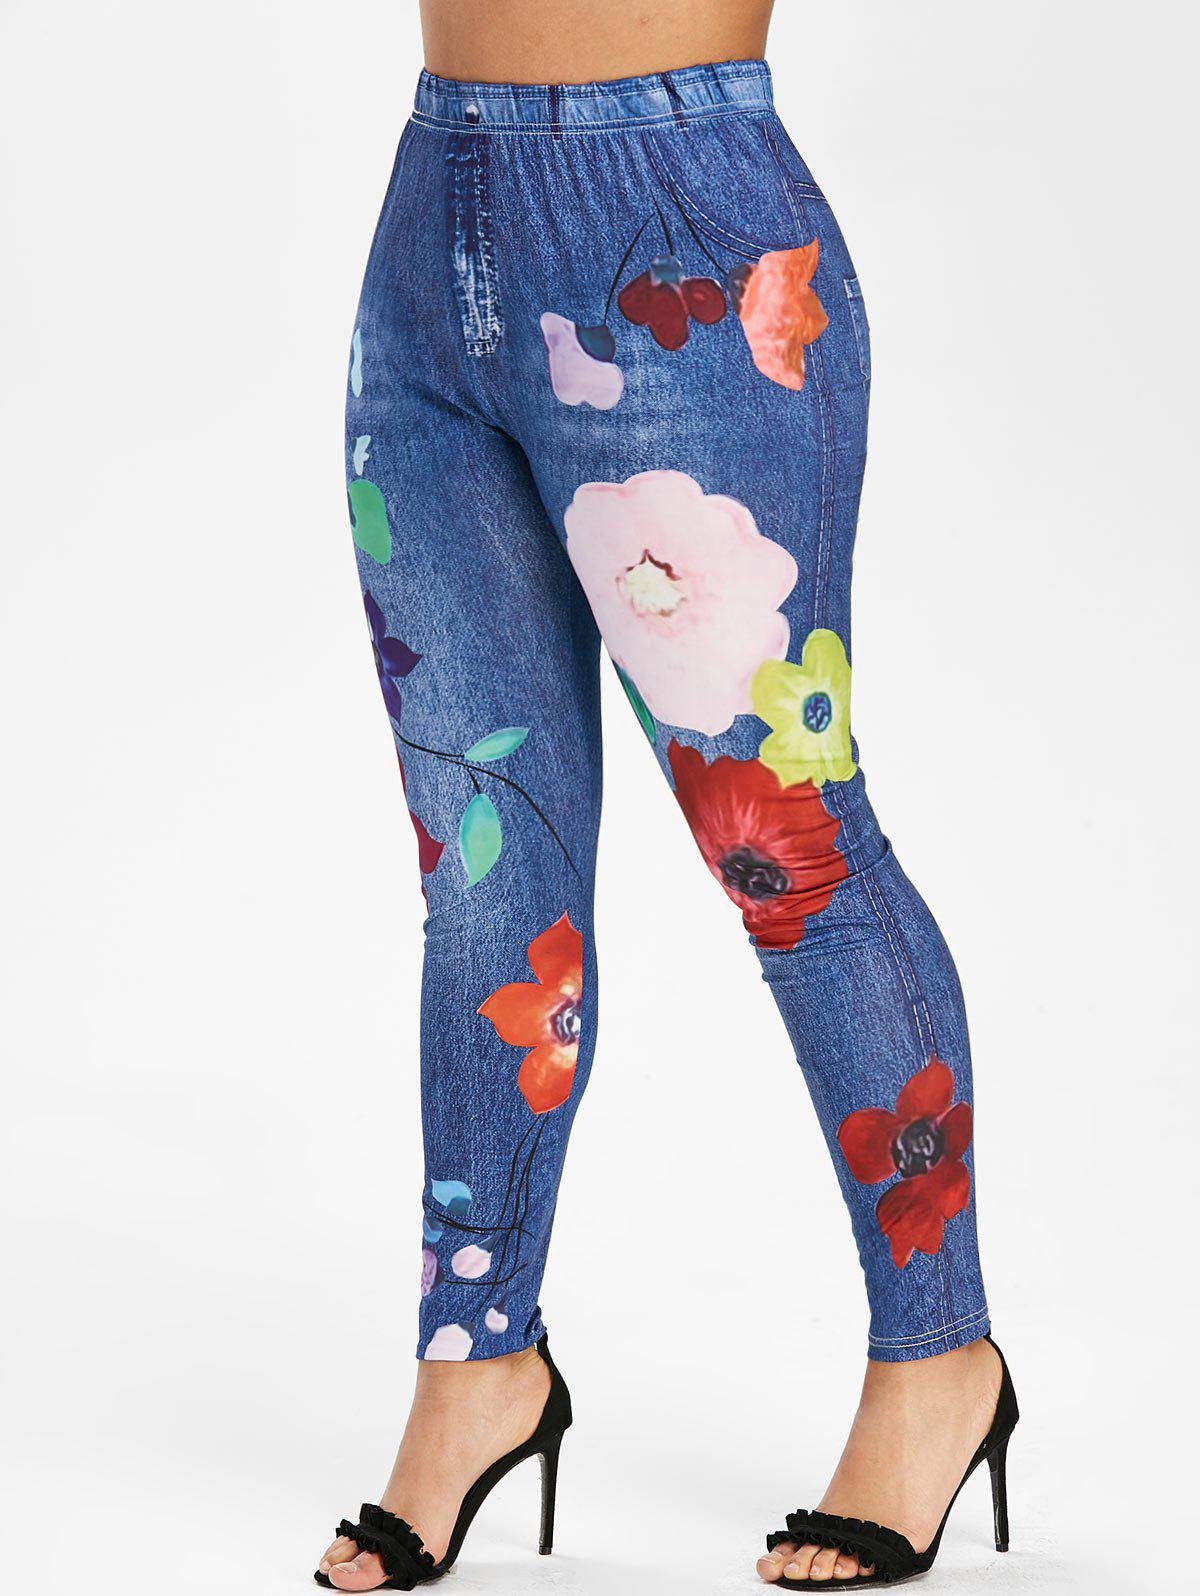 Plus Size Jeans Floral Printed Fitted Leggings - OCEAN BLUE 4X